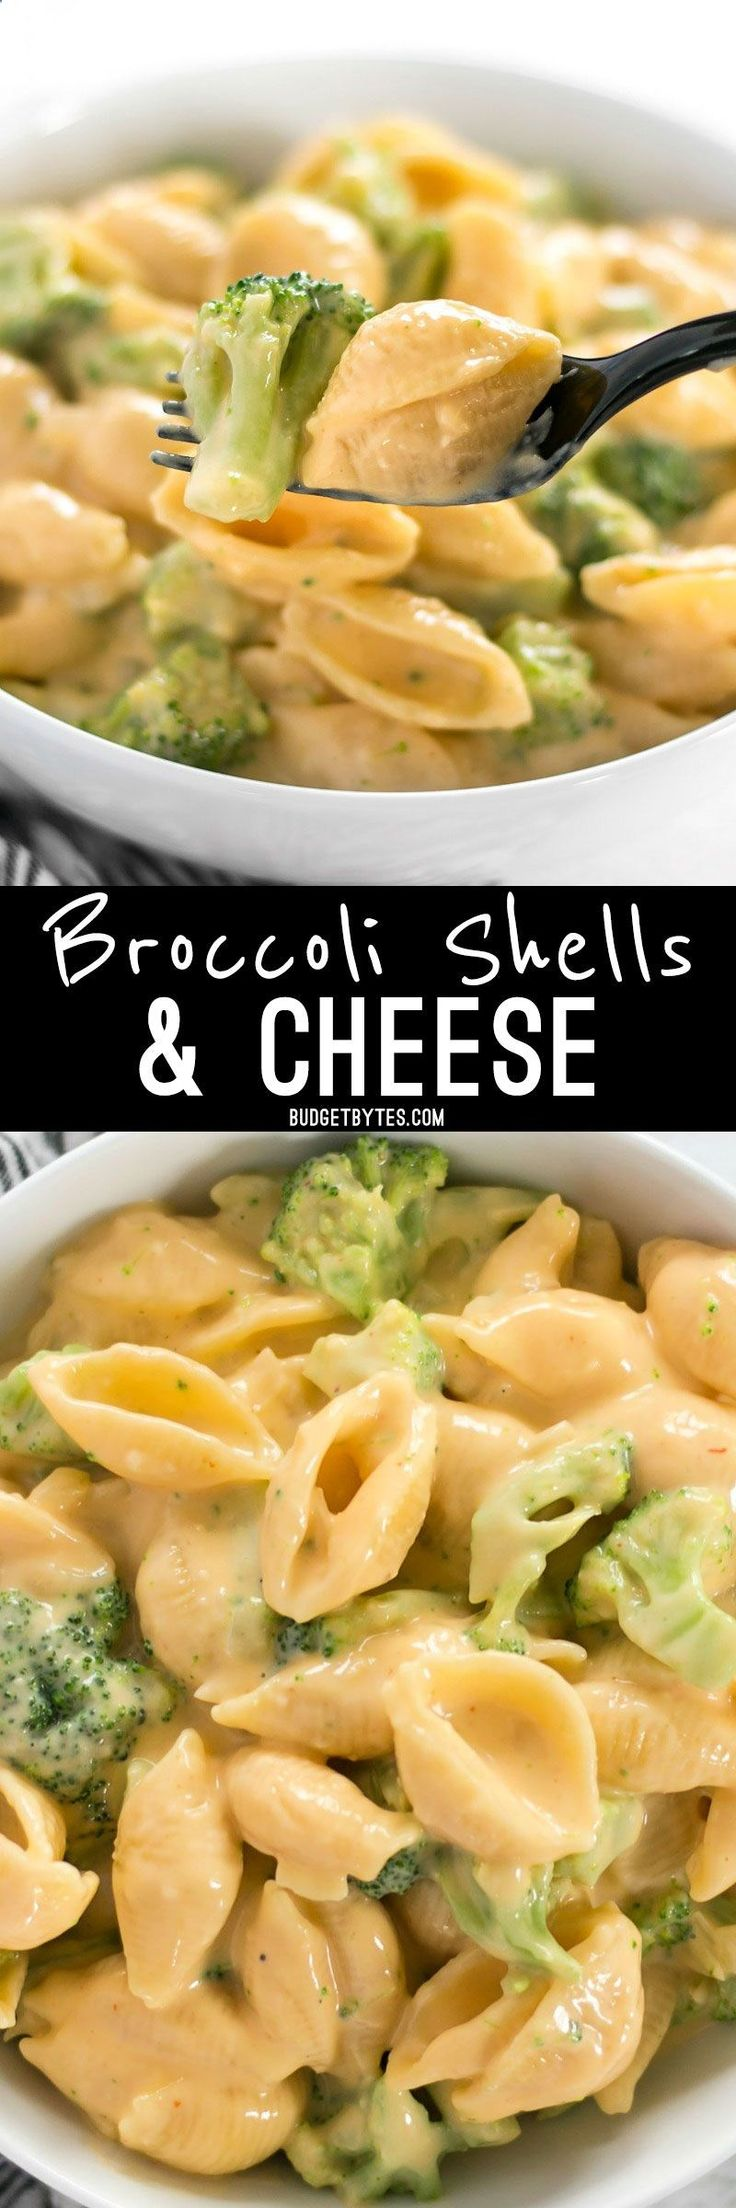 Broccoli shells n cheese is a classic American dish that goes well alongside any meal, or as a hearty side dish. 100% real, 100% homemade. Budget Bytes | Delicious Recipes for Small Budgets